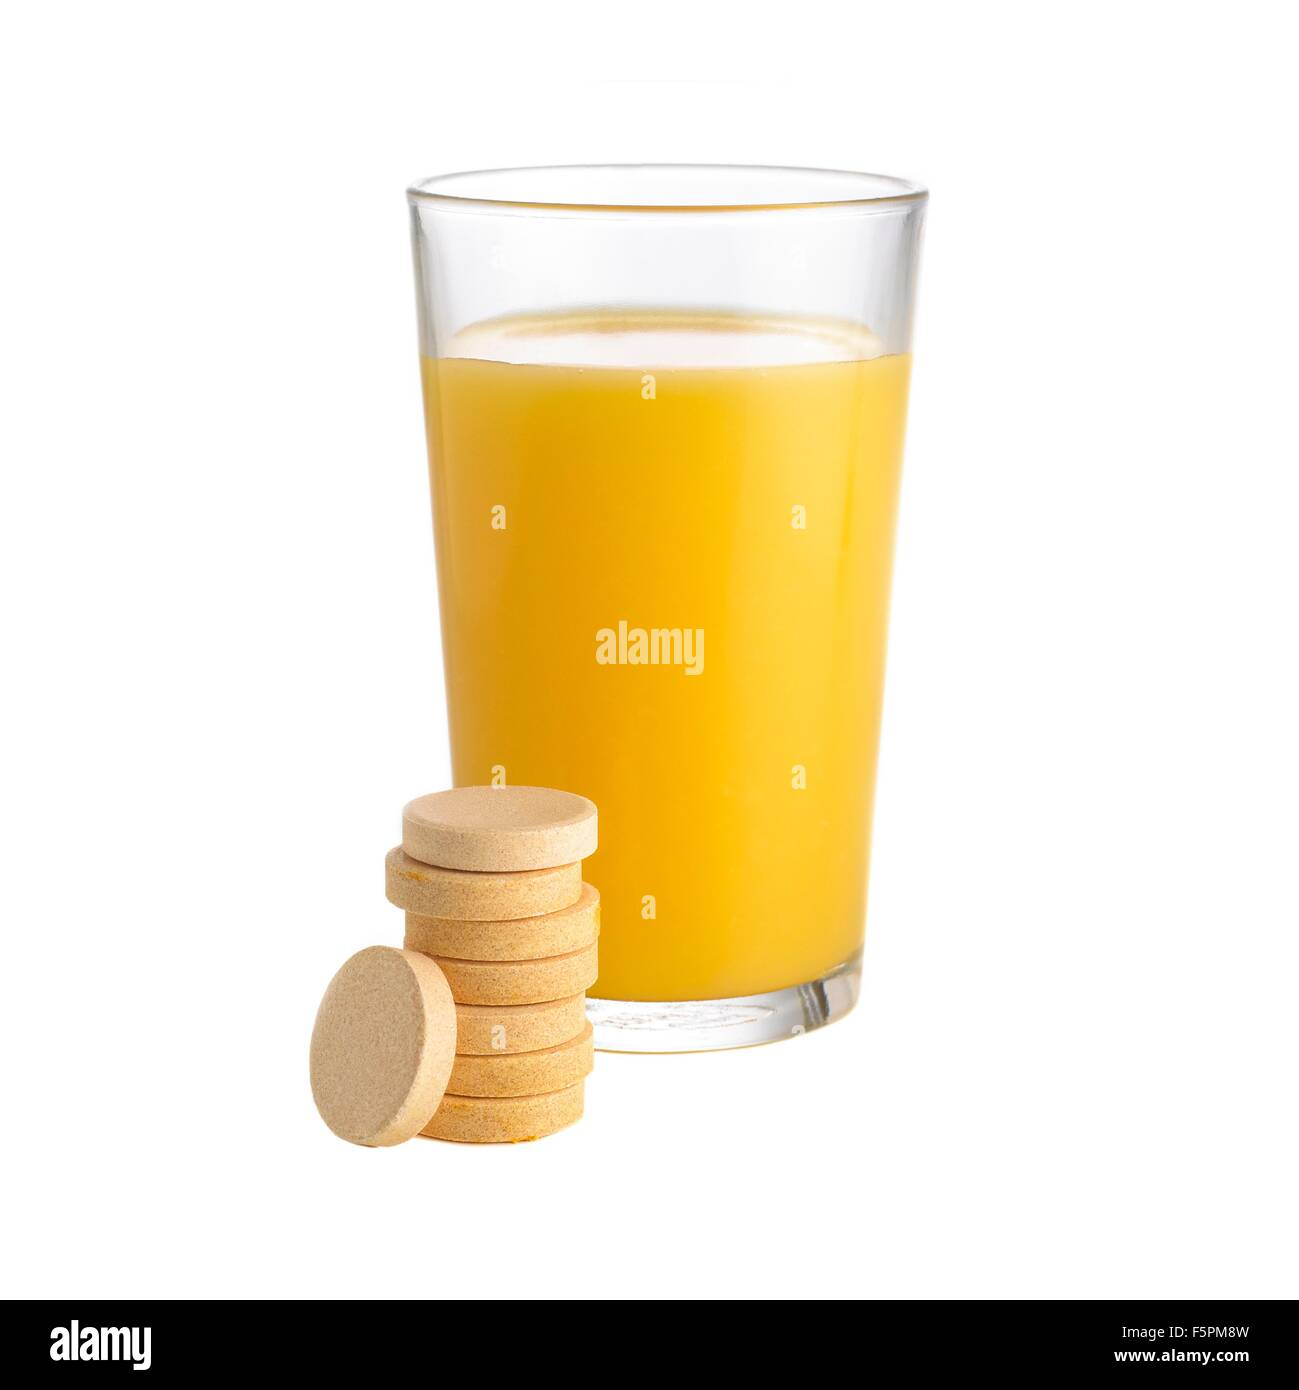 Orange juice and vitamin c tablets against a white background. - Stock Image